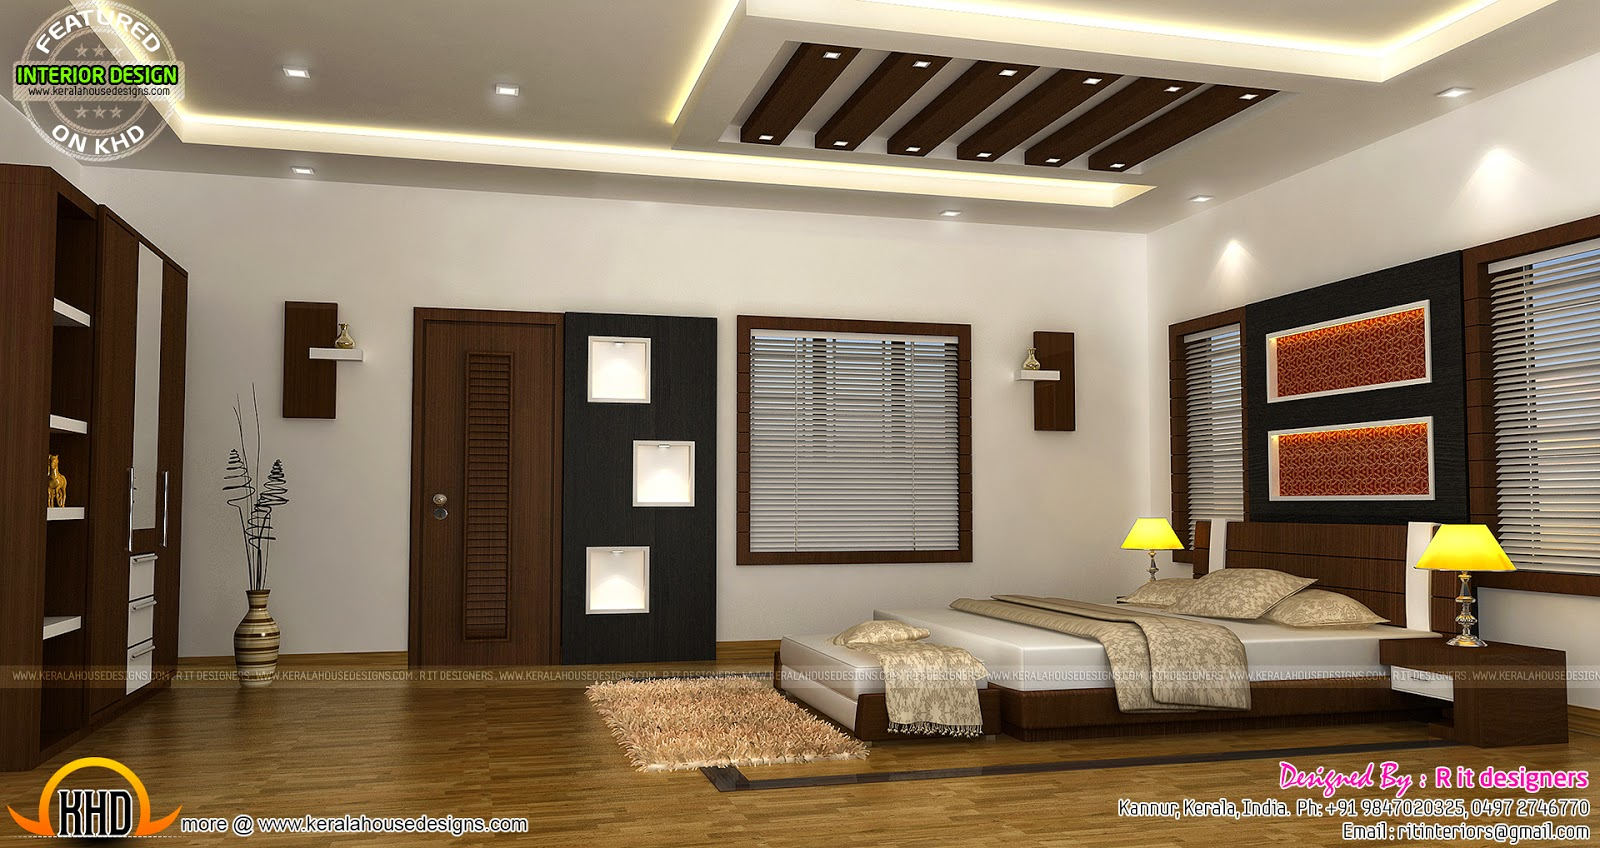 Bedroom interior design with cost kerala home design and for Interior design images bedroom